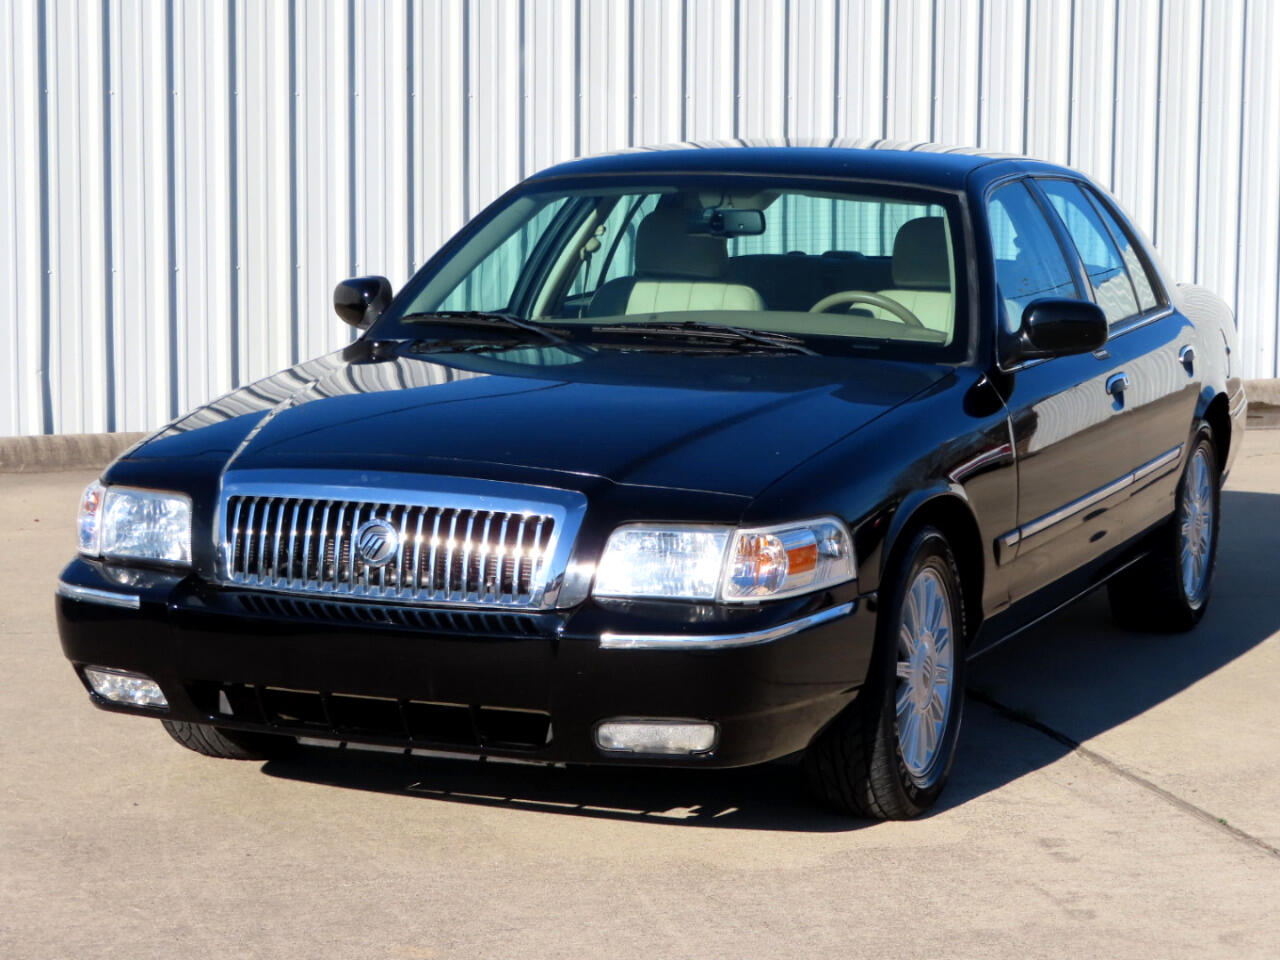 Used 2008 Mercury Grand Marquis Ls For Sale In Humble